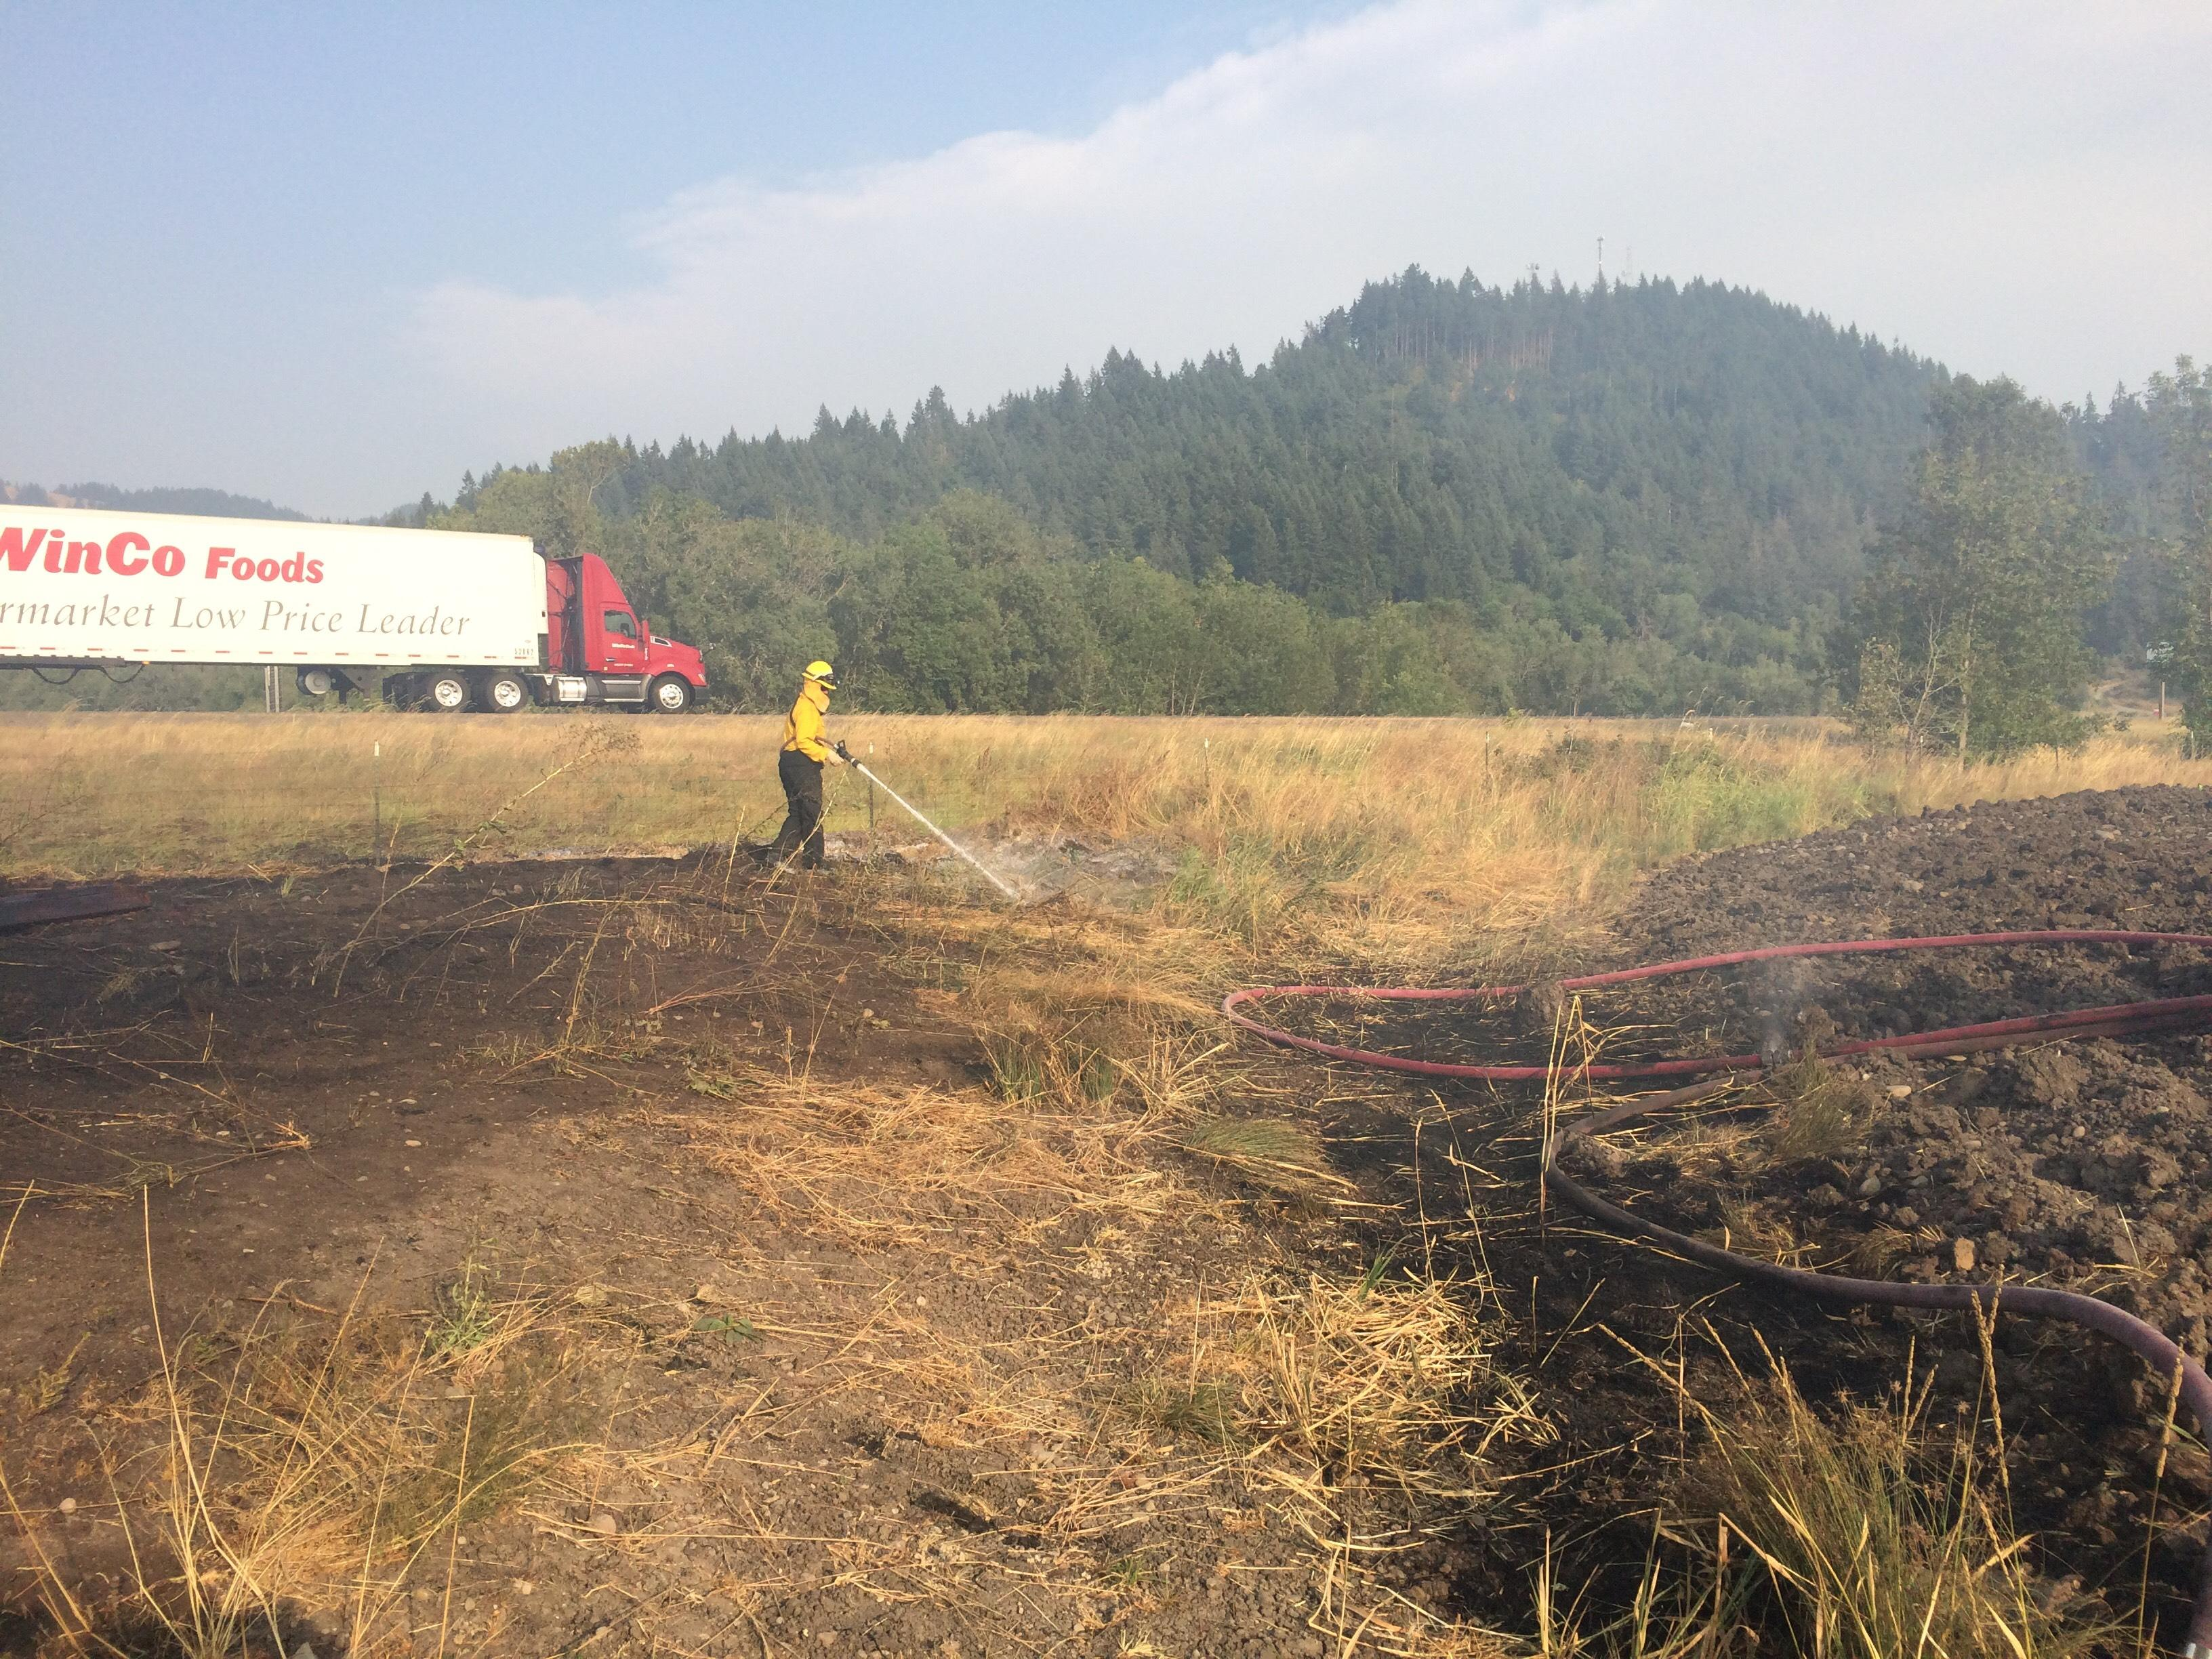 Firefighters held a field fire along Interstate 5 north of Beltline to about 7 acres Wednesday evening.  The fire will likely smolder into Thursday, officials said. (SBG)